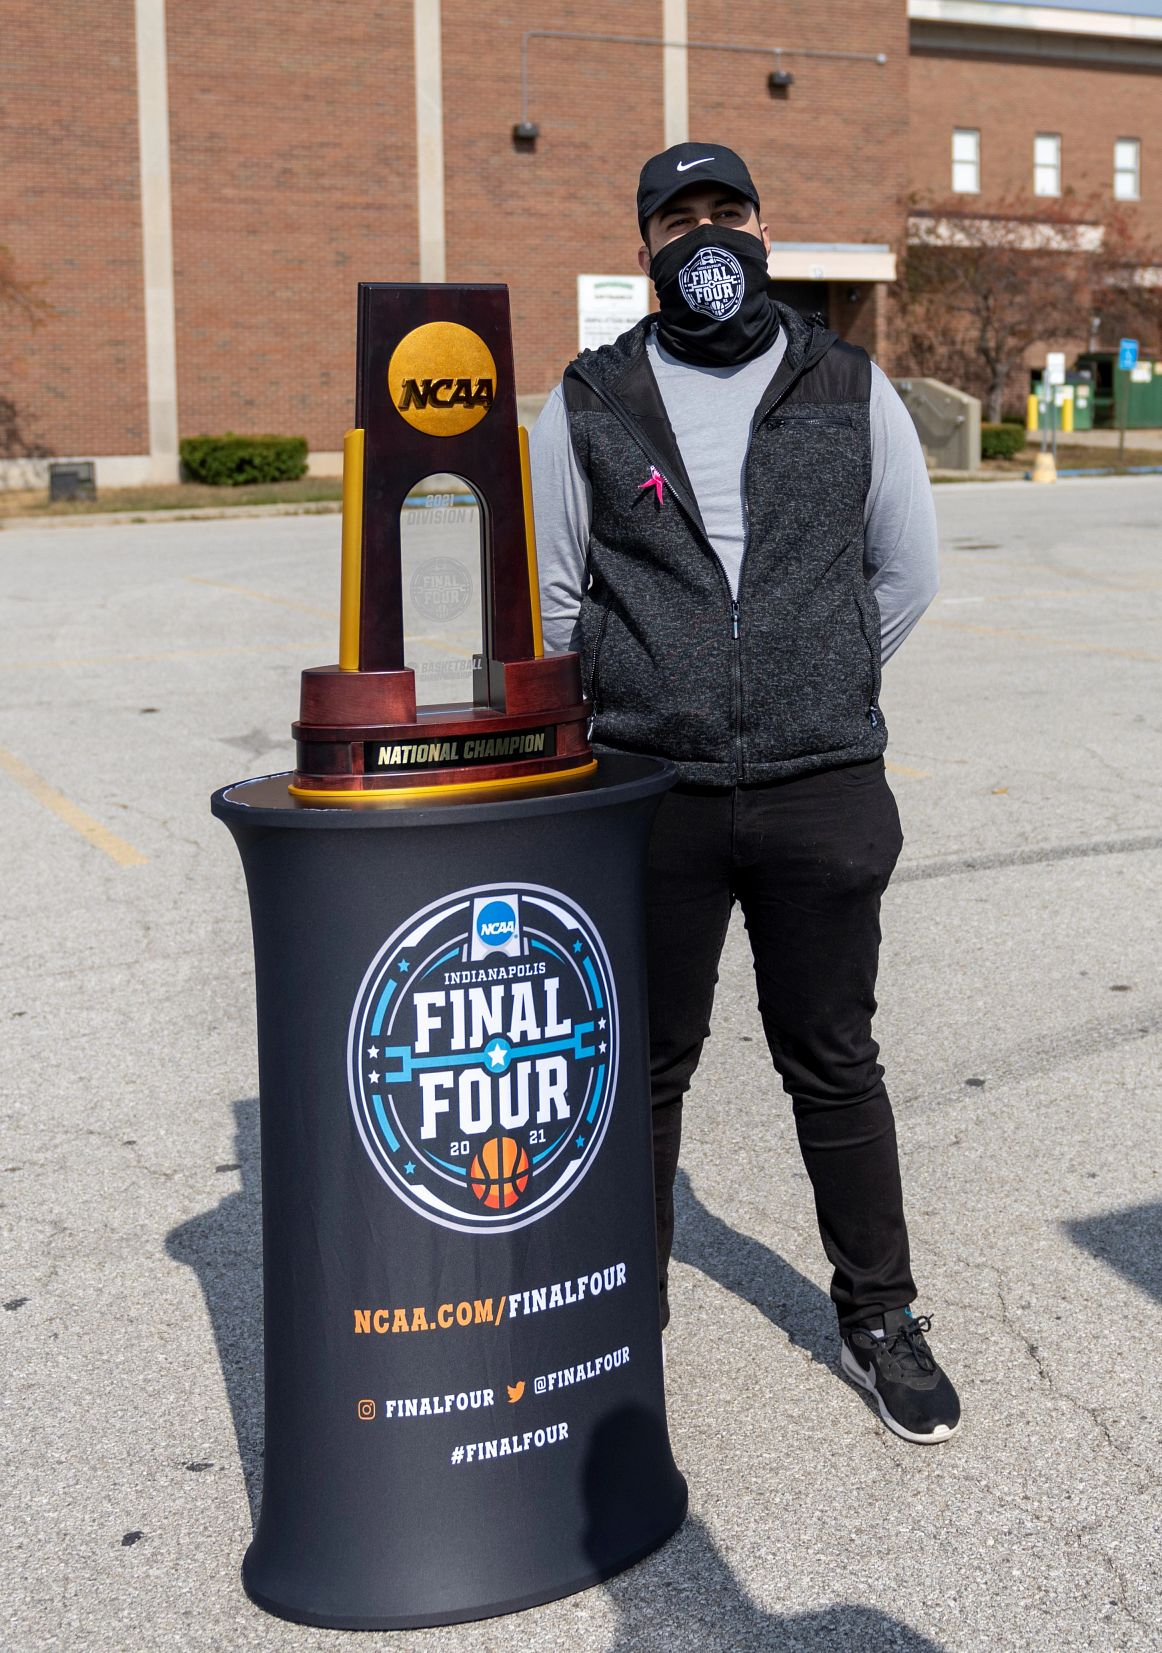 Wally stands with a NCAA championship replica trophy